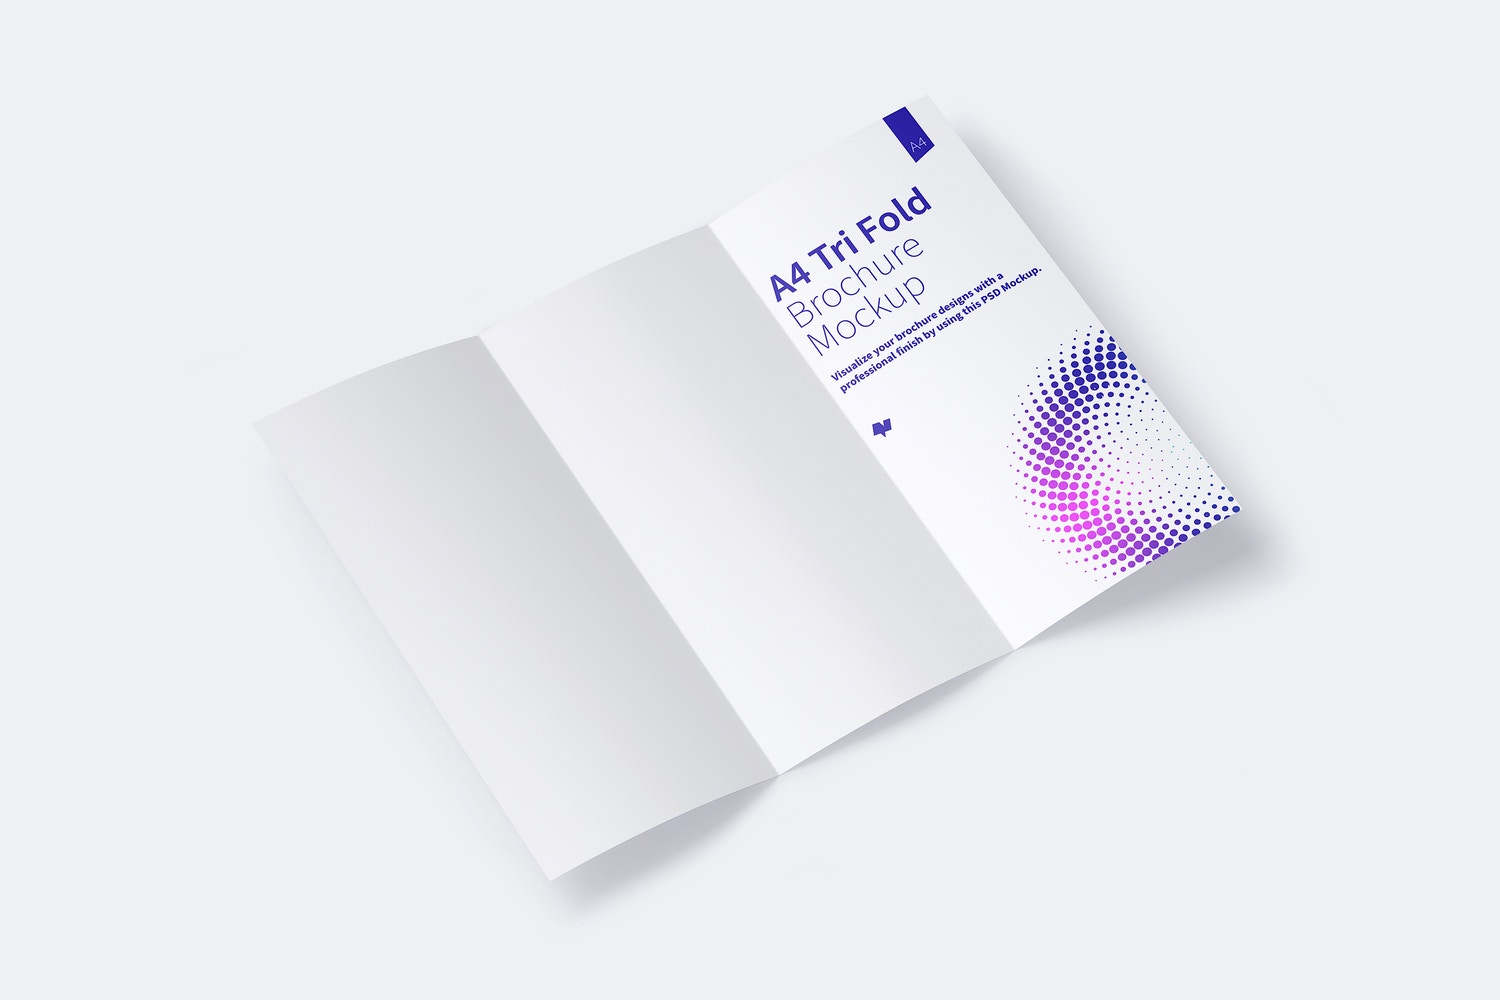 A4 Trifold Brochure Mockup 01 by Original Mockups on Original Mockups